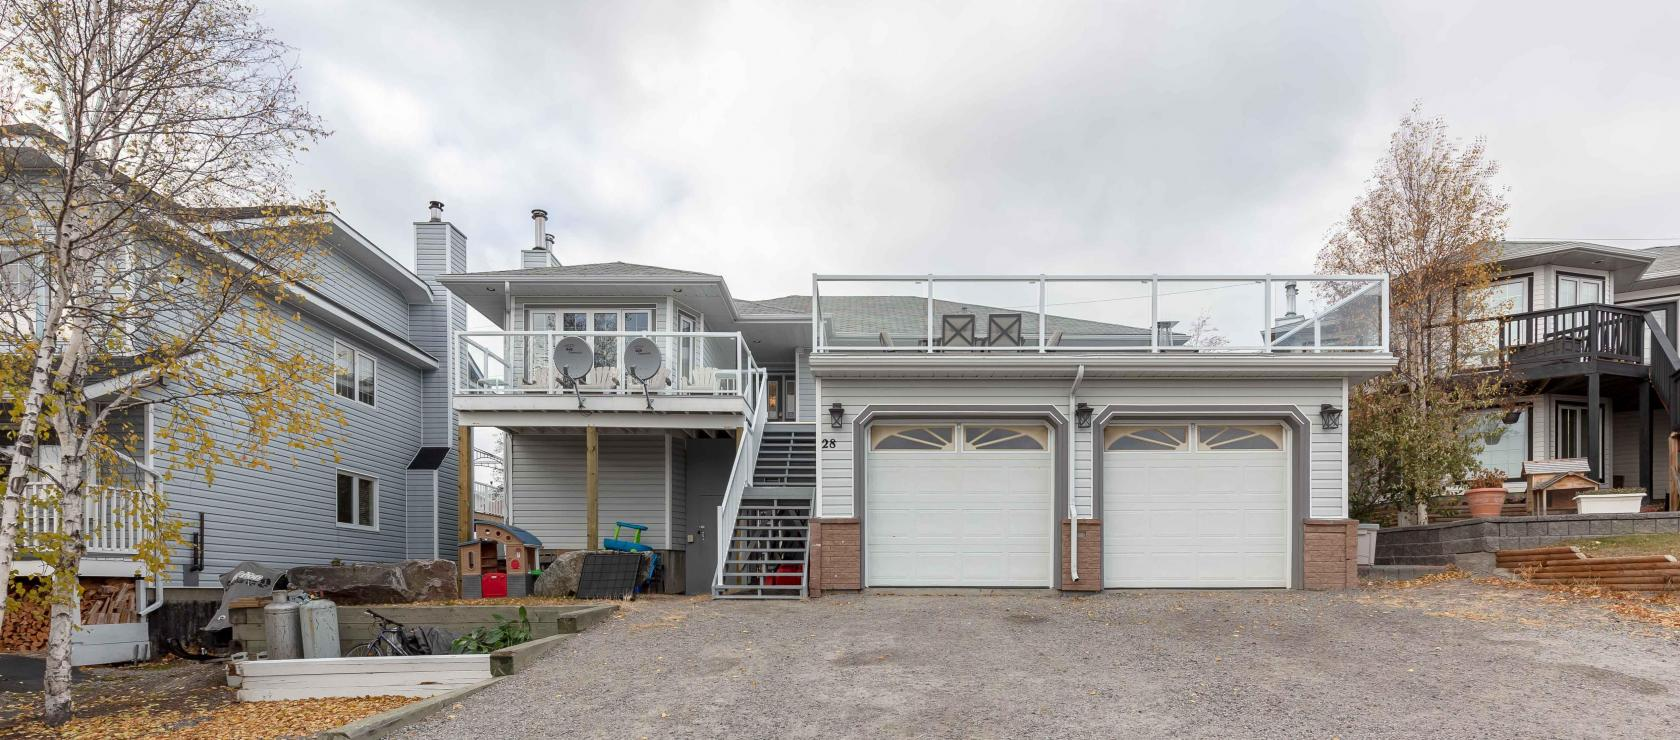 28 Stevens Crescent, Range Lake, Yellowknife 2